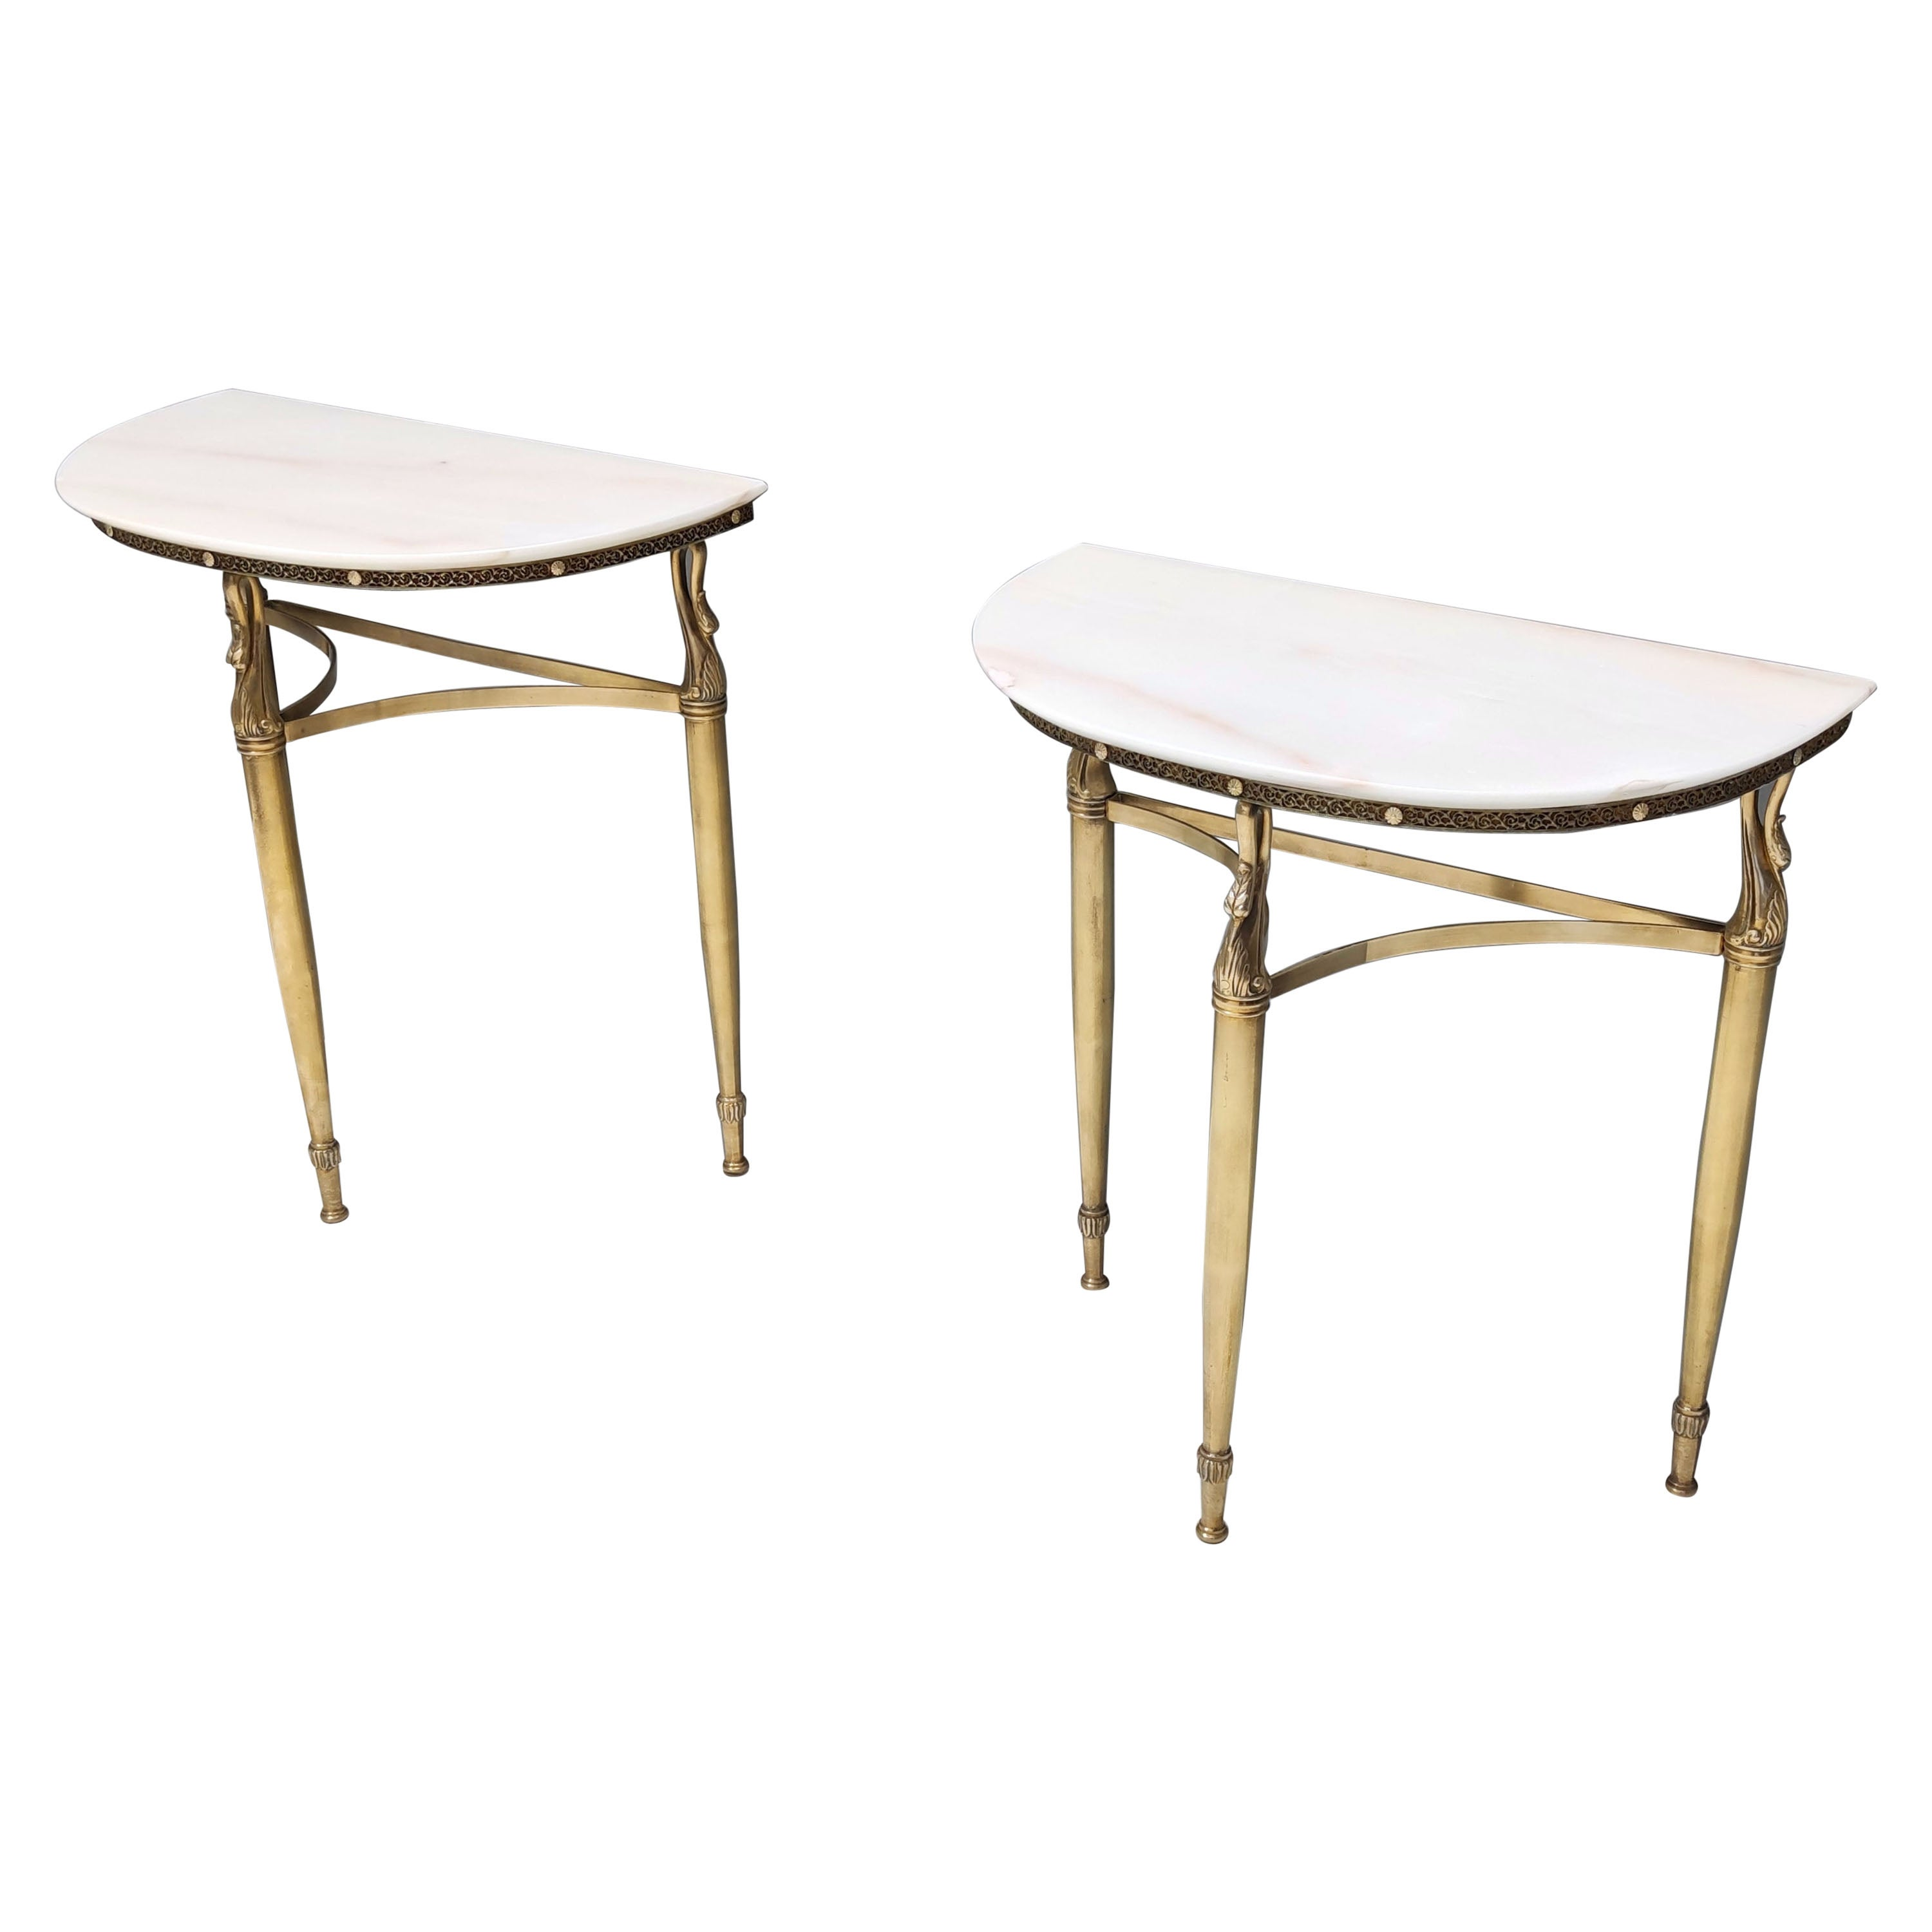 Pair of Nightstands / Console Tables with Marble Tops and Brass Legs, Italy